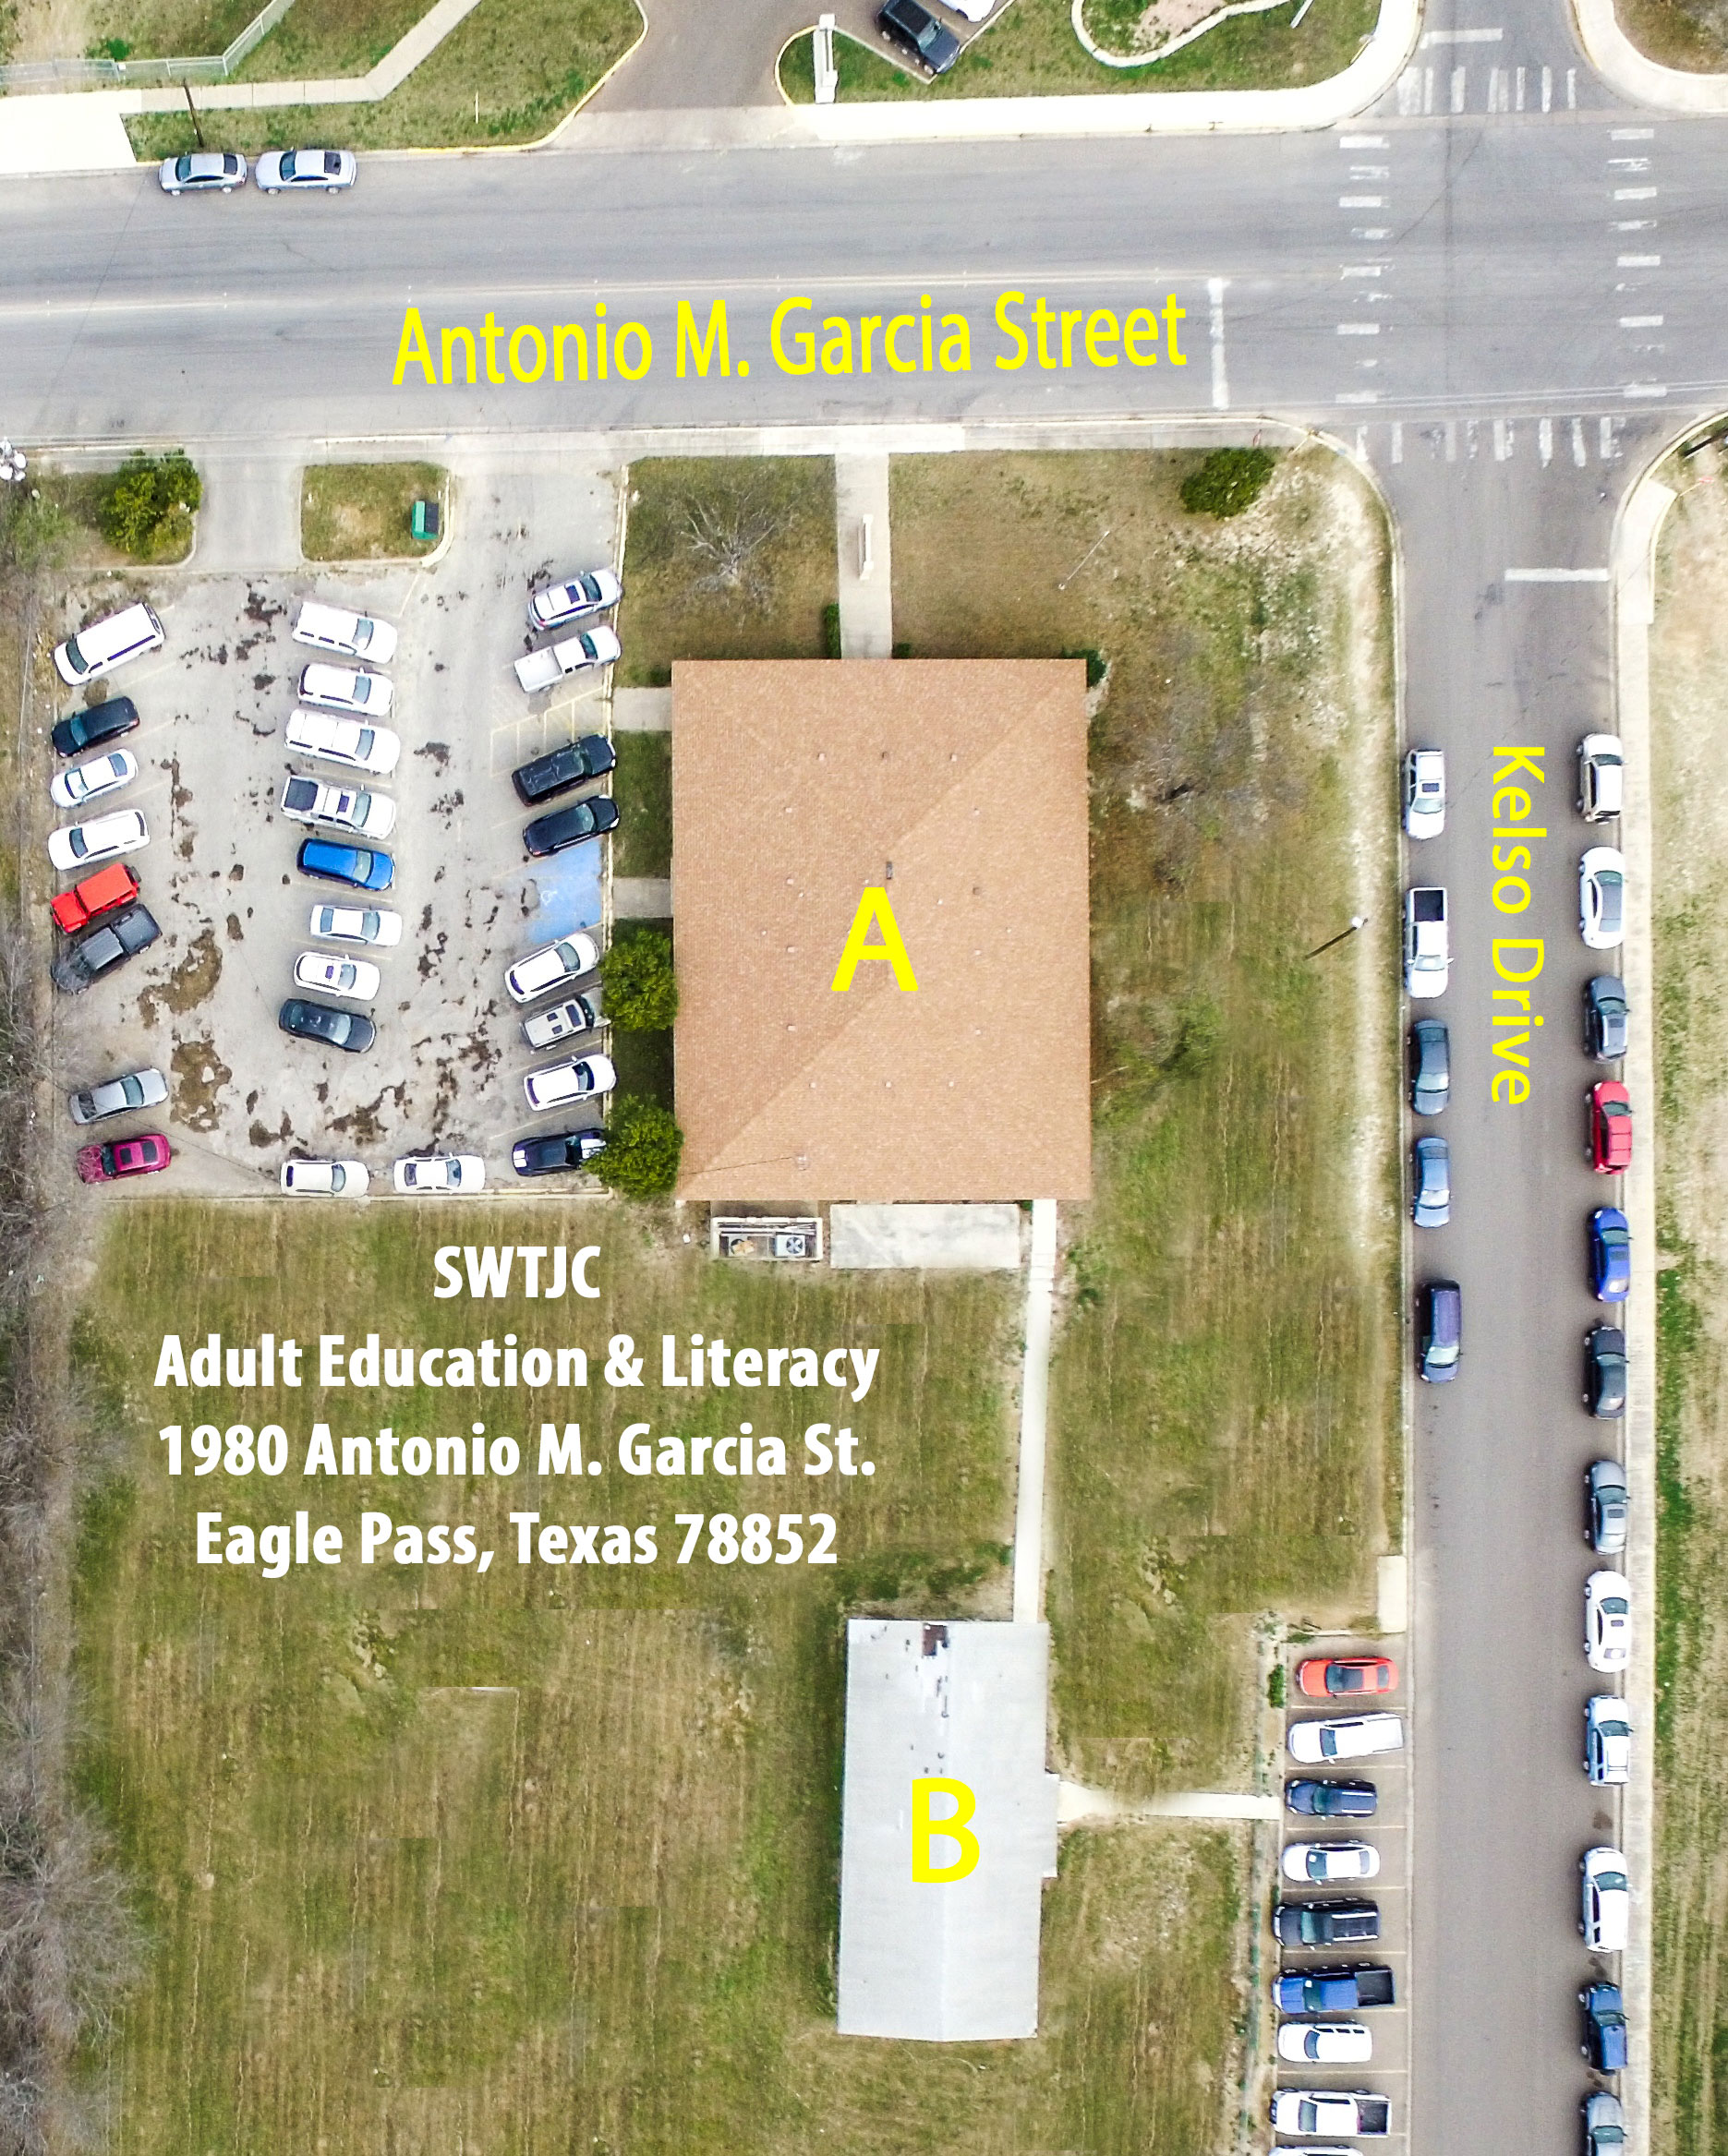 Eagle Pass Adult Education & Literacy Campus Map with Building ID